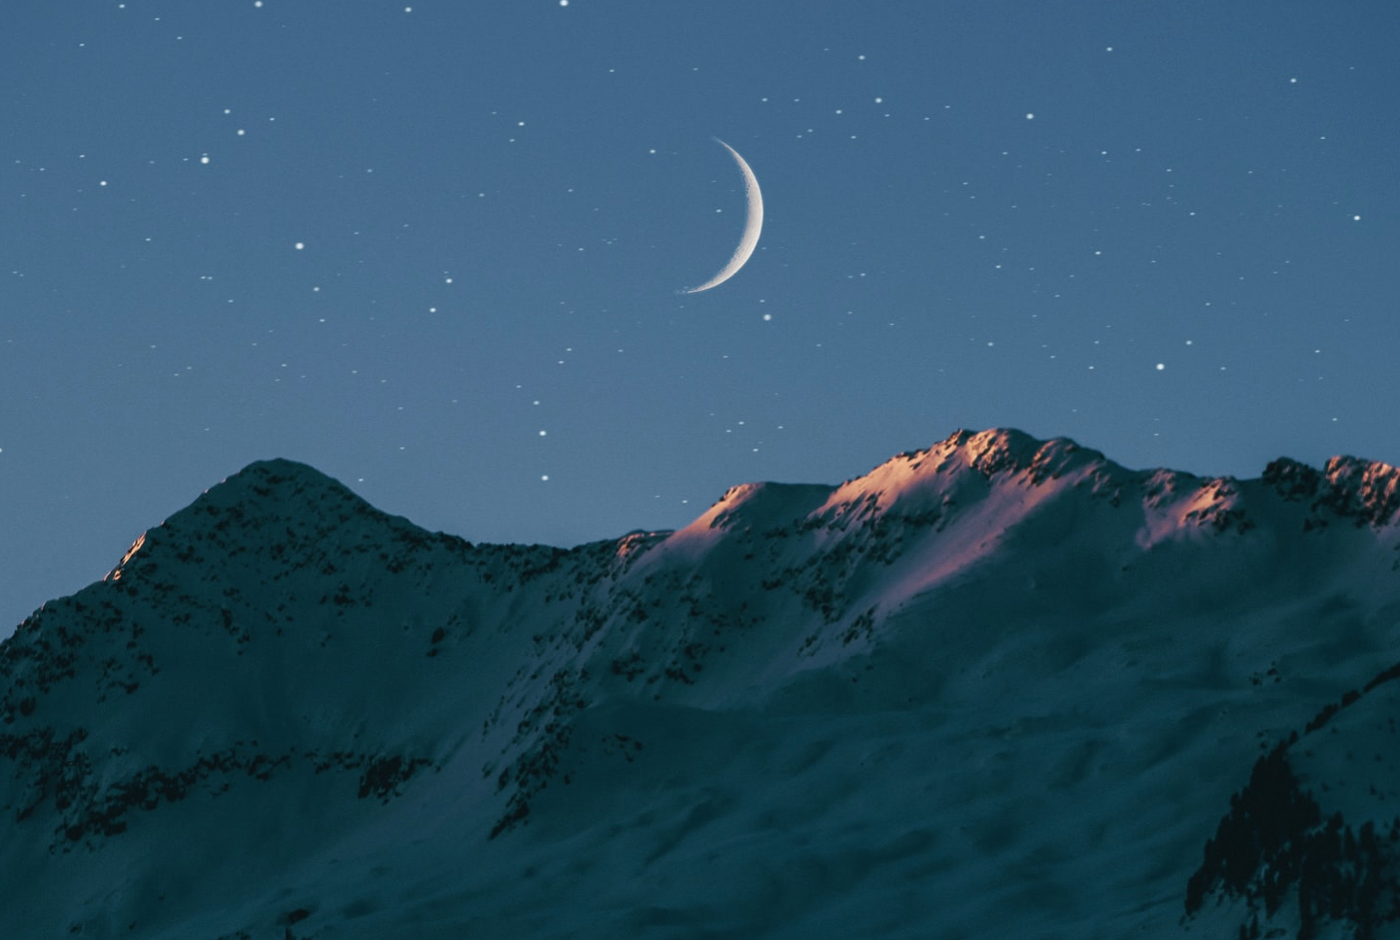 a waning crescent just before a new moon over a mountain range